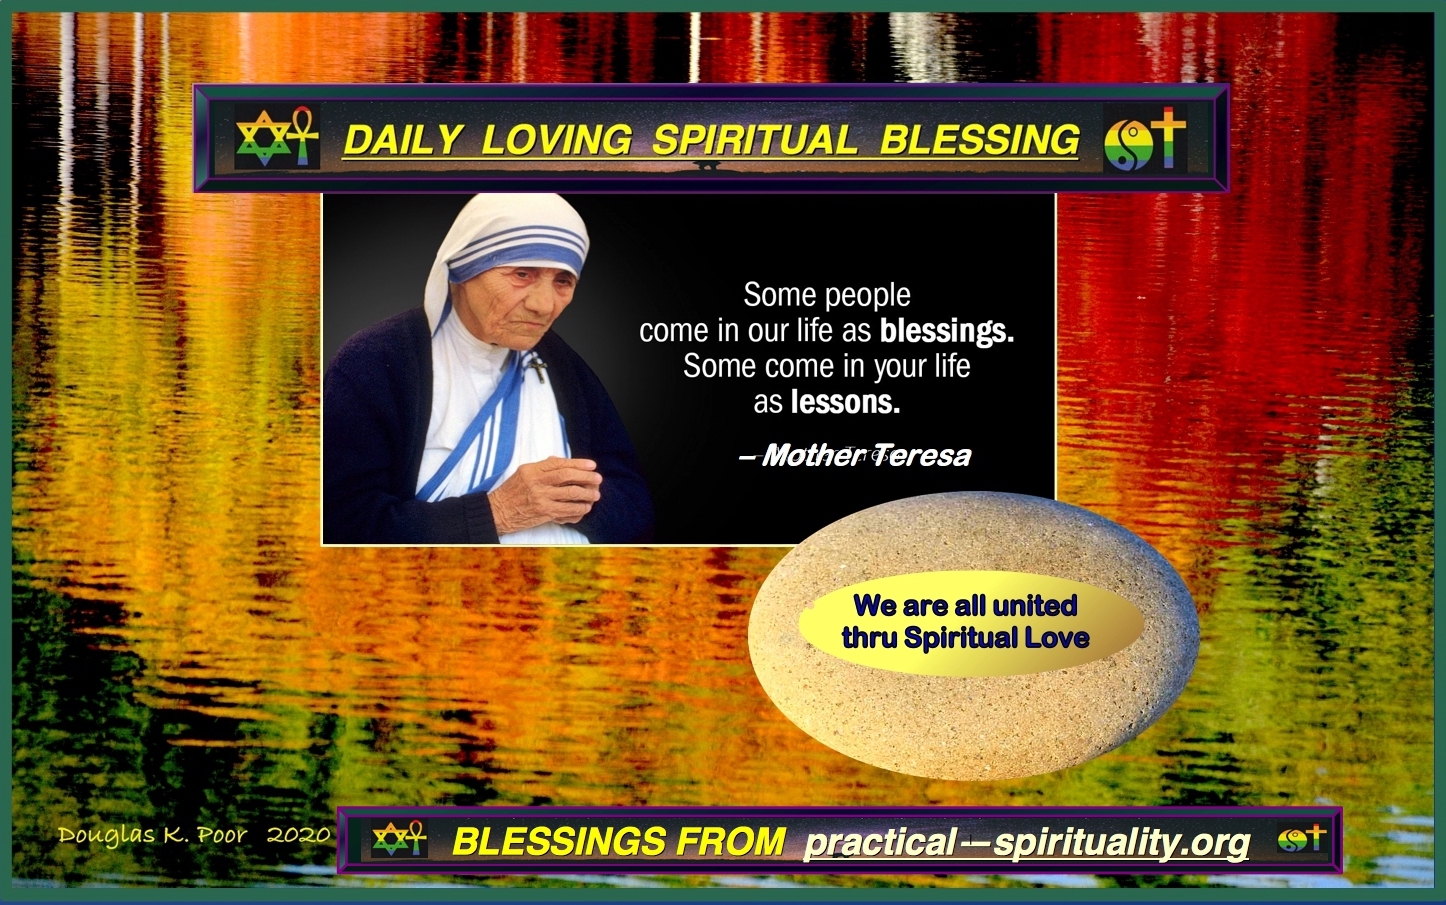 PRACTICAL SPIRITUALITY IS A FREE SERVICE OF dd-TV.com by Douglas K. Poor with Komposer